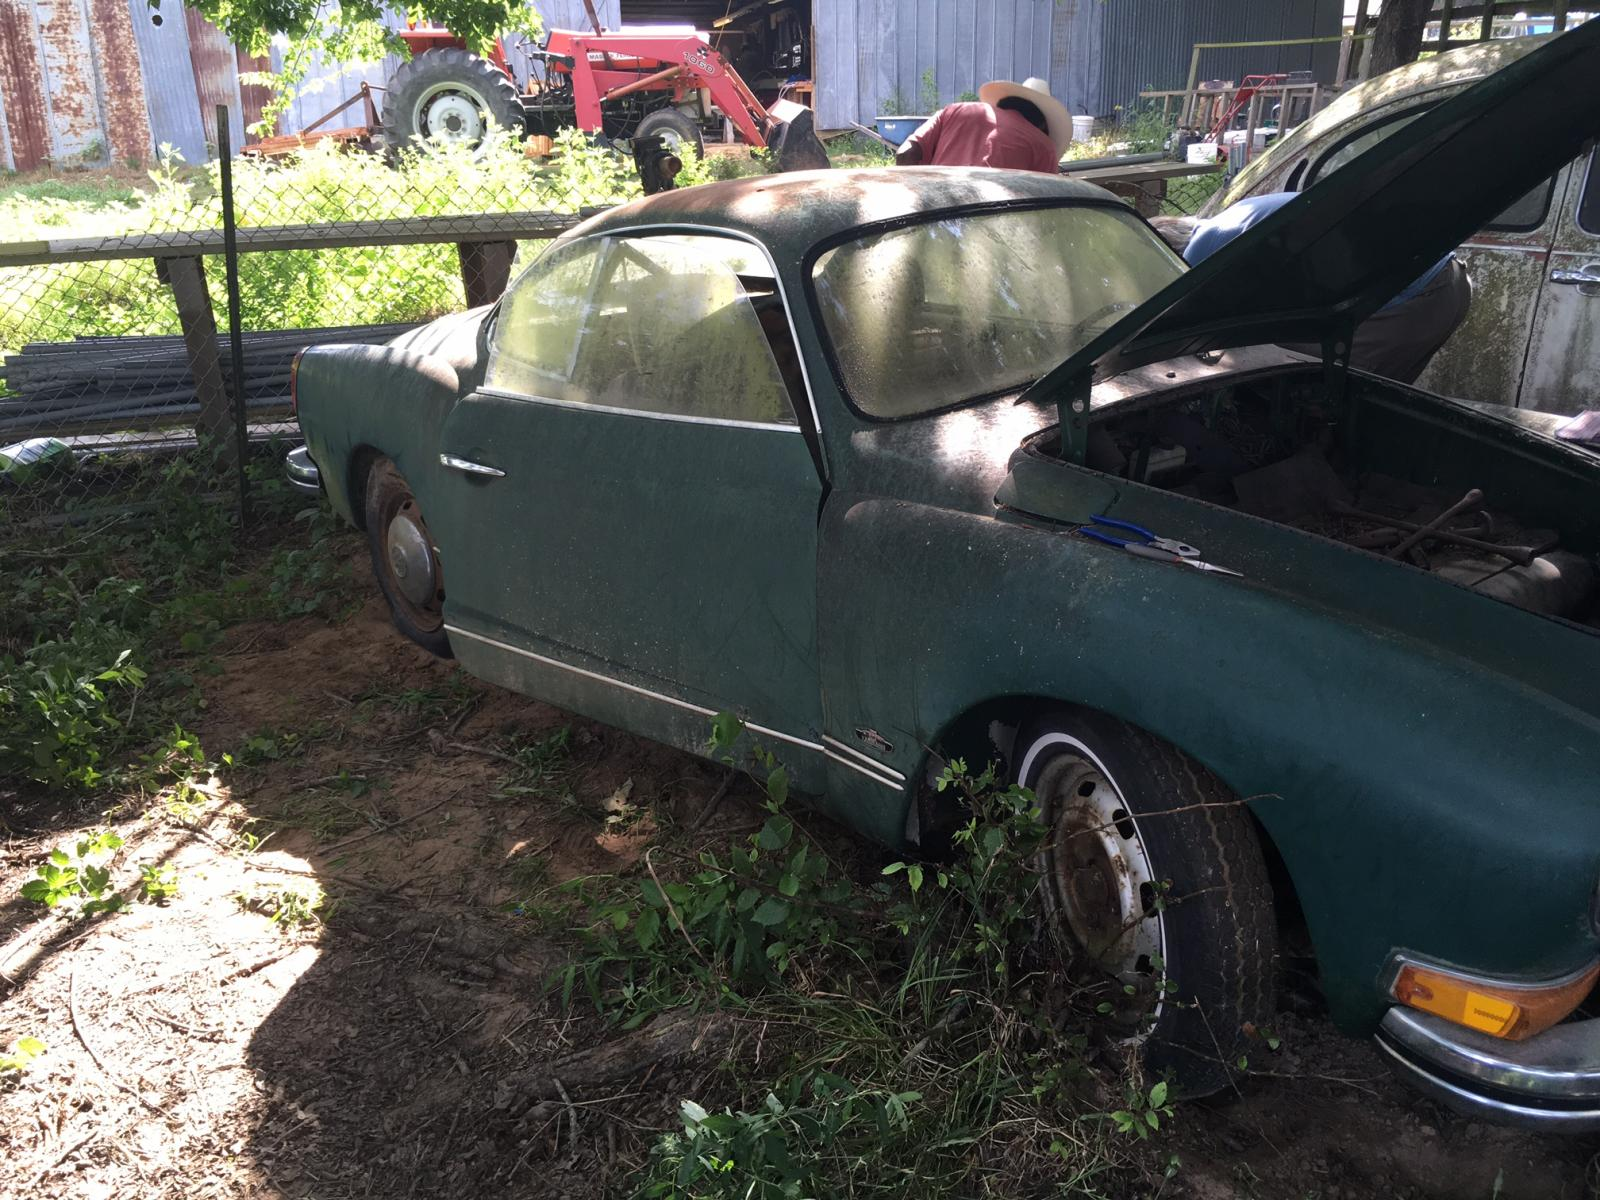 Ghia View Topic 1972 Farm Find Thesambacom Vert Dome Light Wiring Click Image To Fullscreen